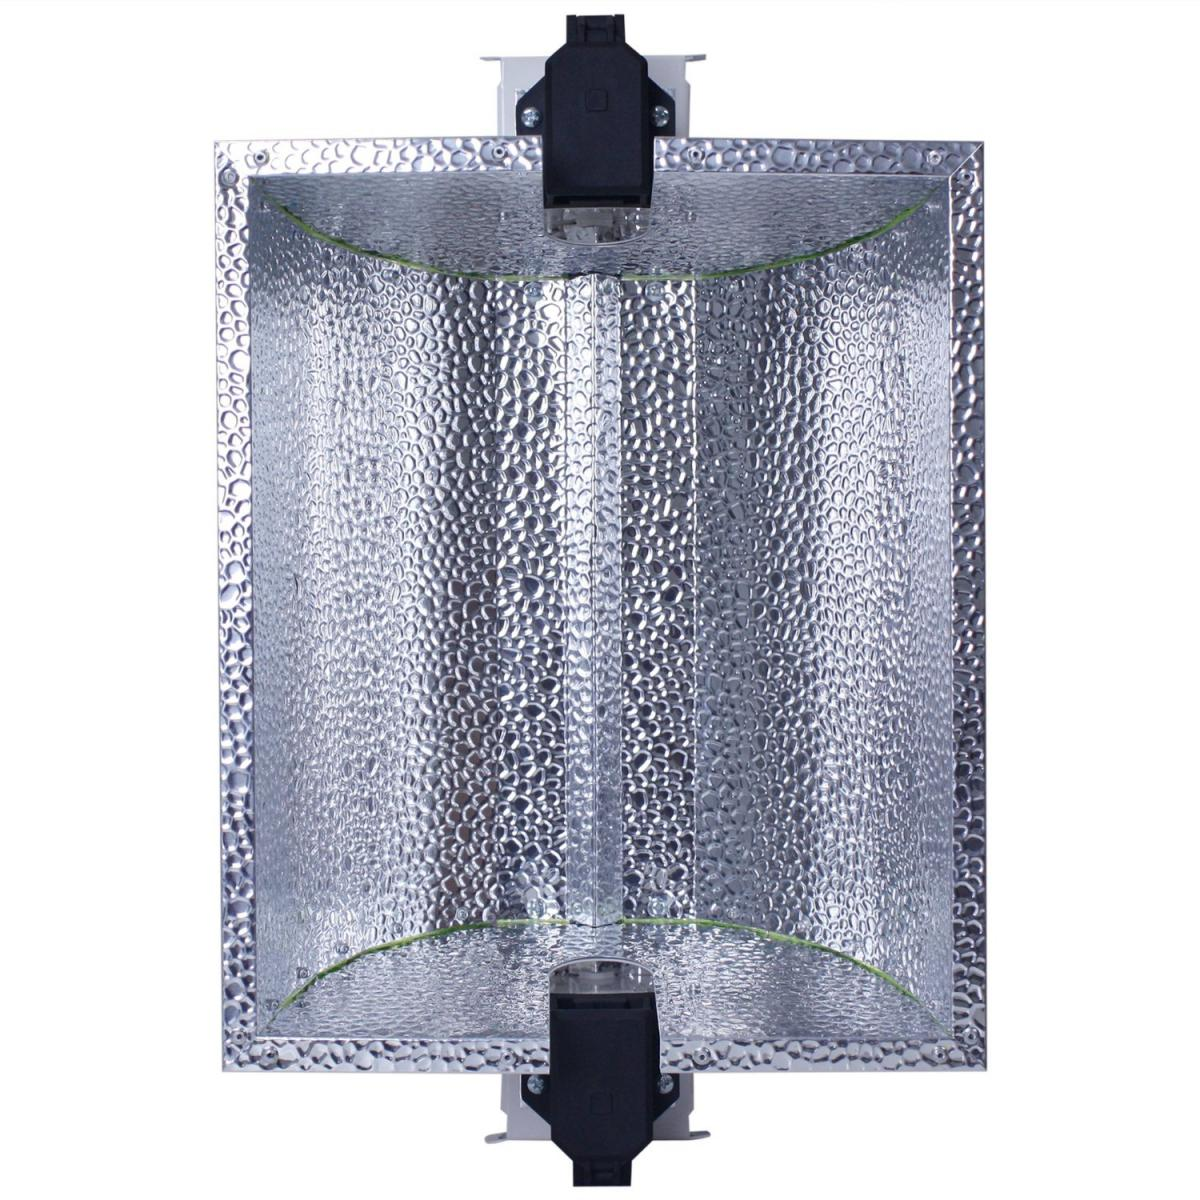 Spl Horticulture Double Ended Compat Reflector Grow Light